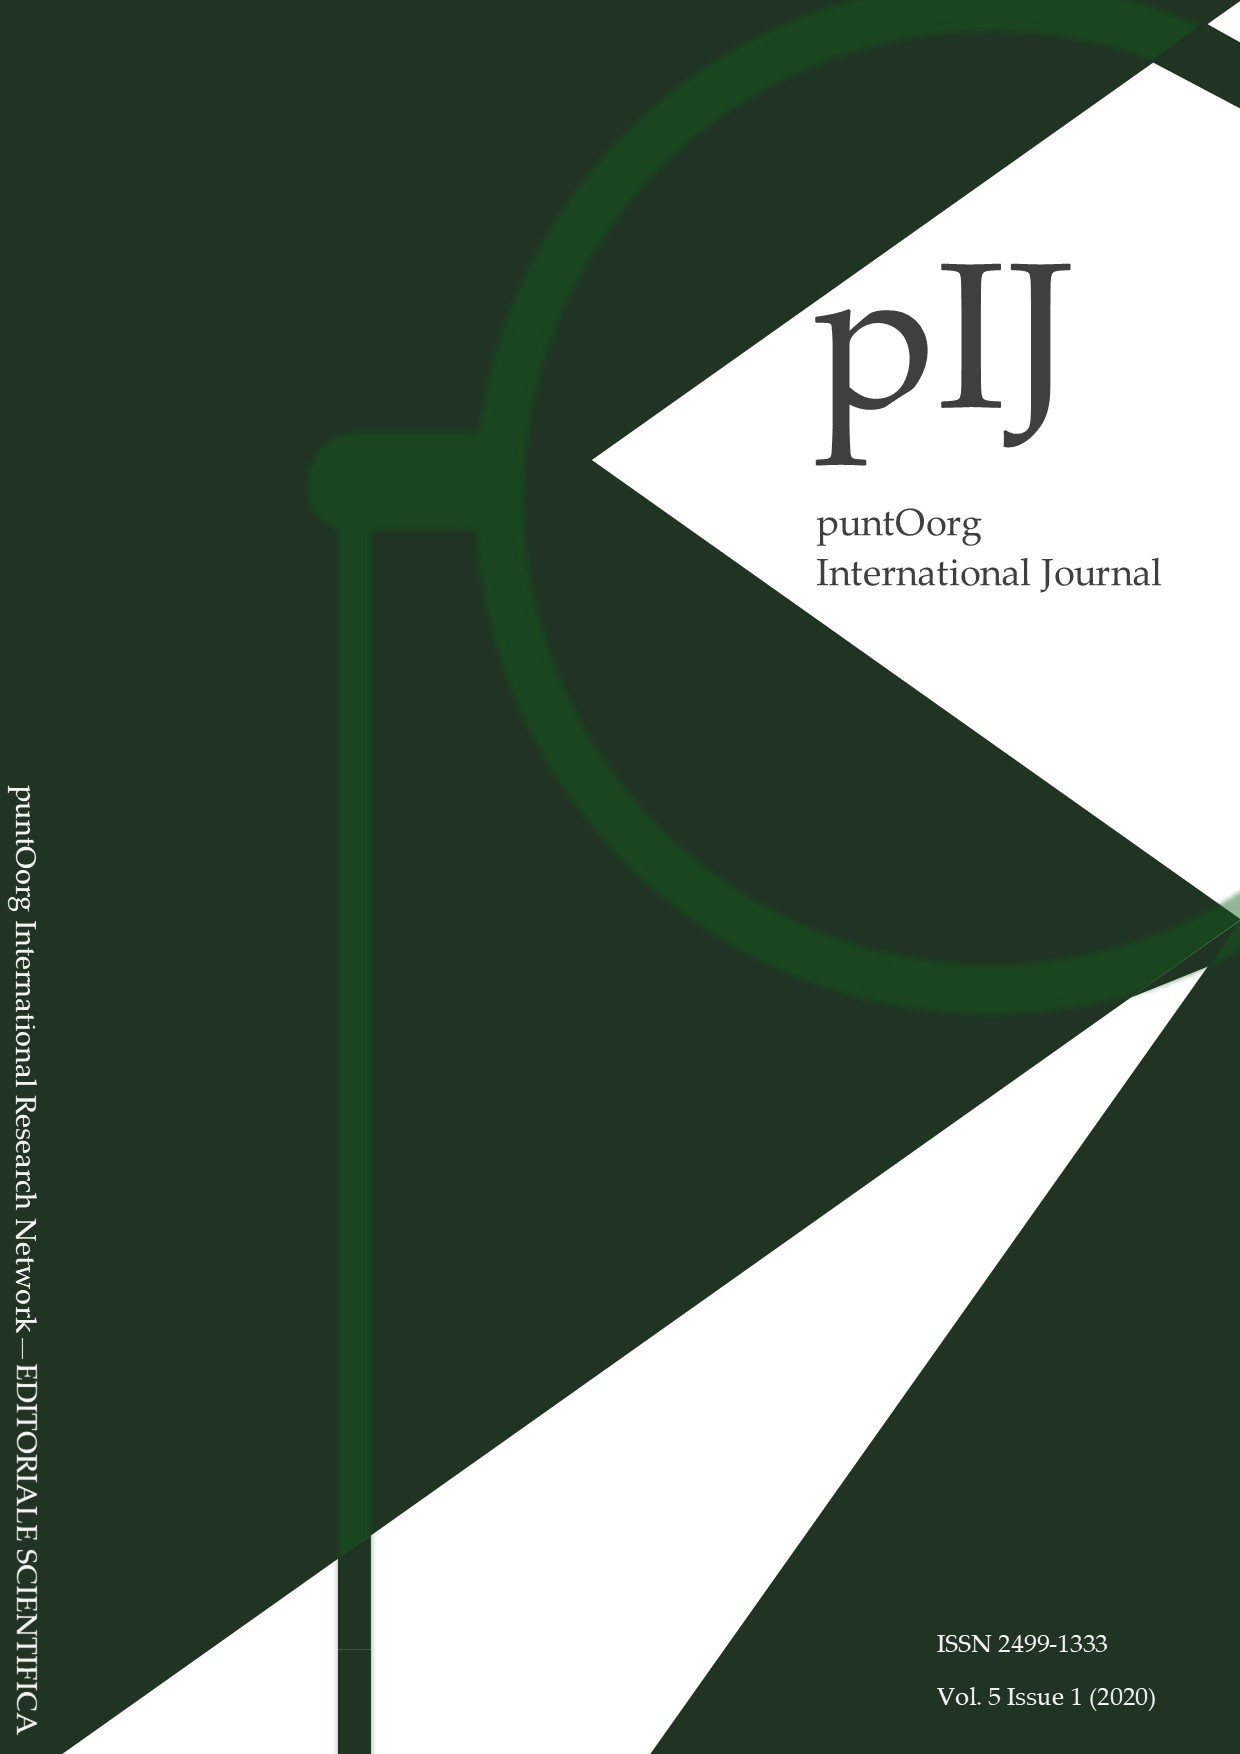 """View Vol. 5 No. 1 (2020): """"Identity and Pluralism: Who am I? What are we? How are we?"""" – A reflection on Seeking, Giving and Making sense of organizing in a fluid, uncertain and digitized world"""